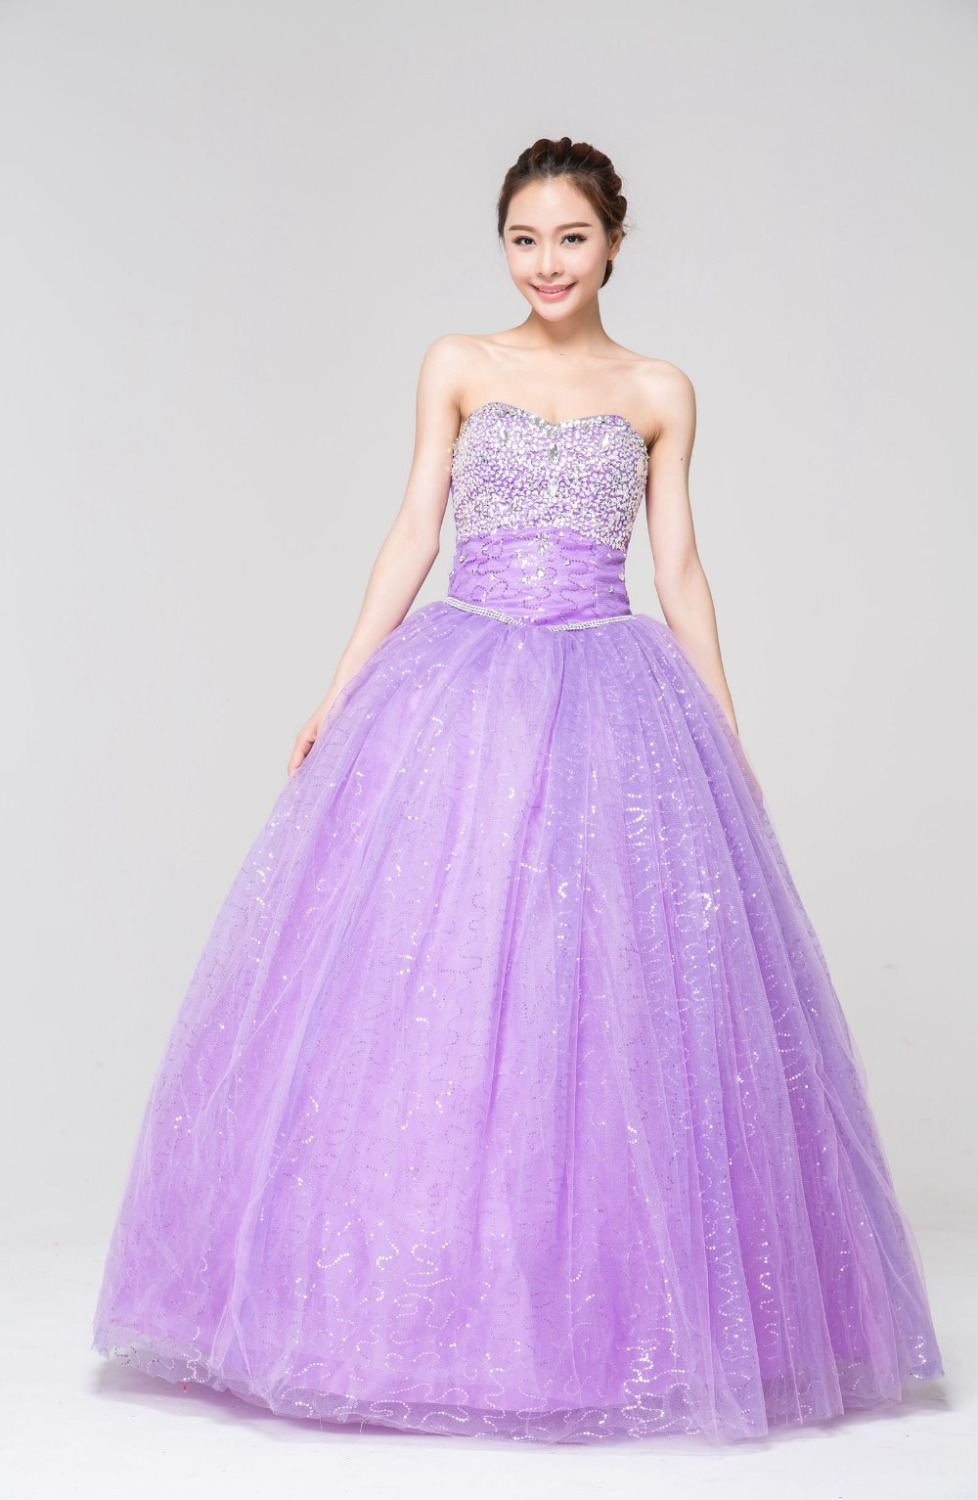 Free Shippingcrystal Decor Lavender Quinceanera Bridal Princess Ball Gown Vintage Wedding Dress Purple 2017 Real Picture Wholesa In Dresses From